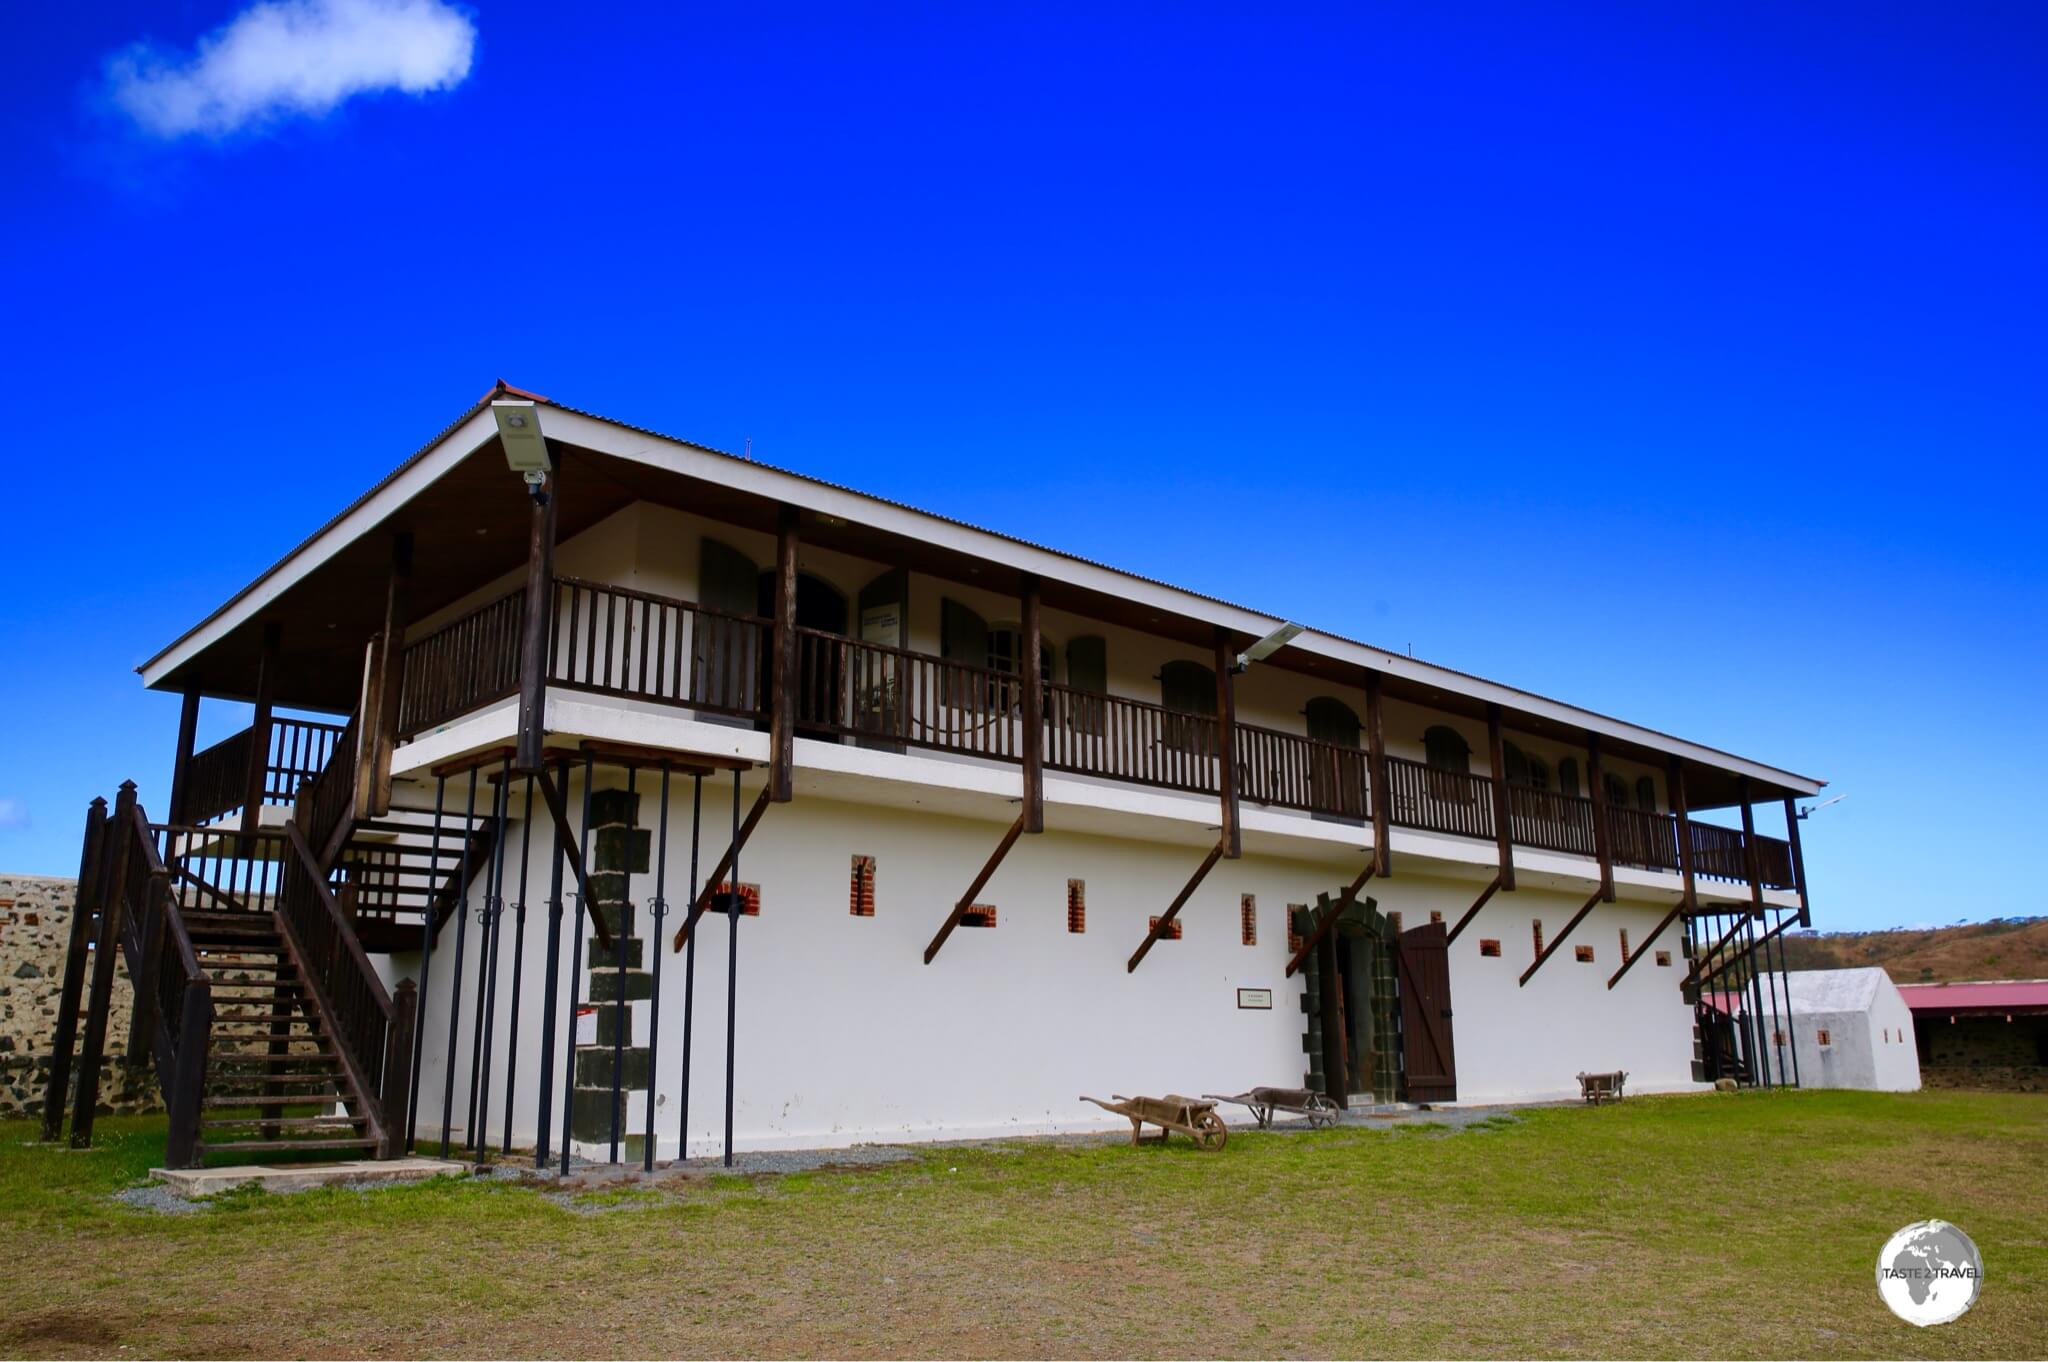 The administrative building at Fort Teremba.